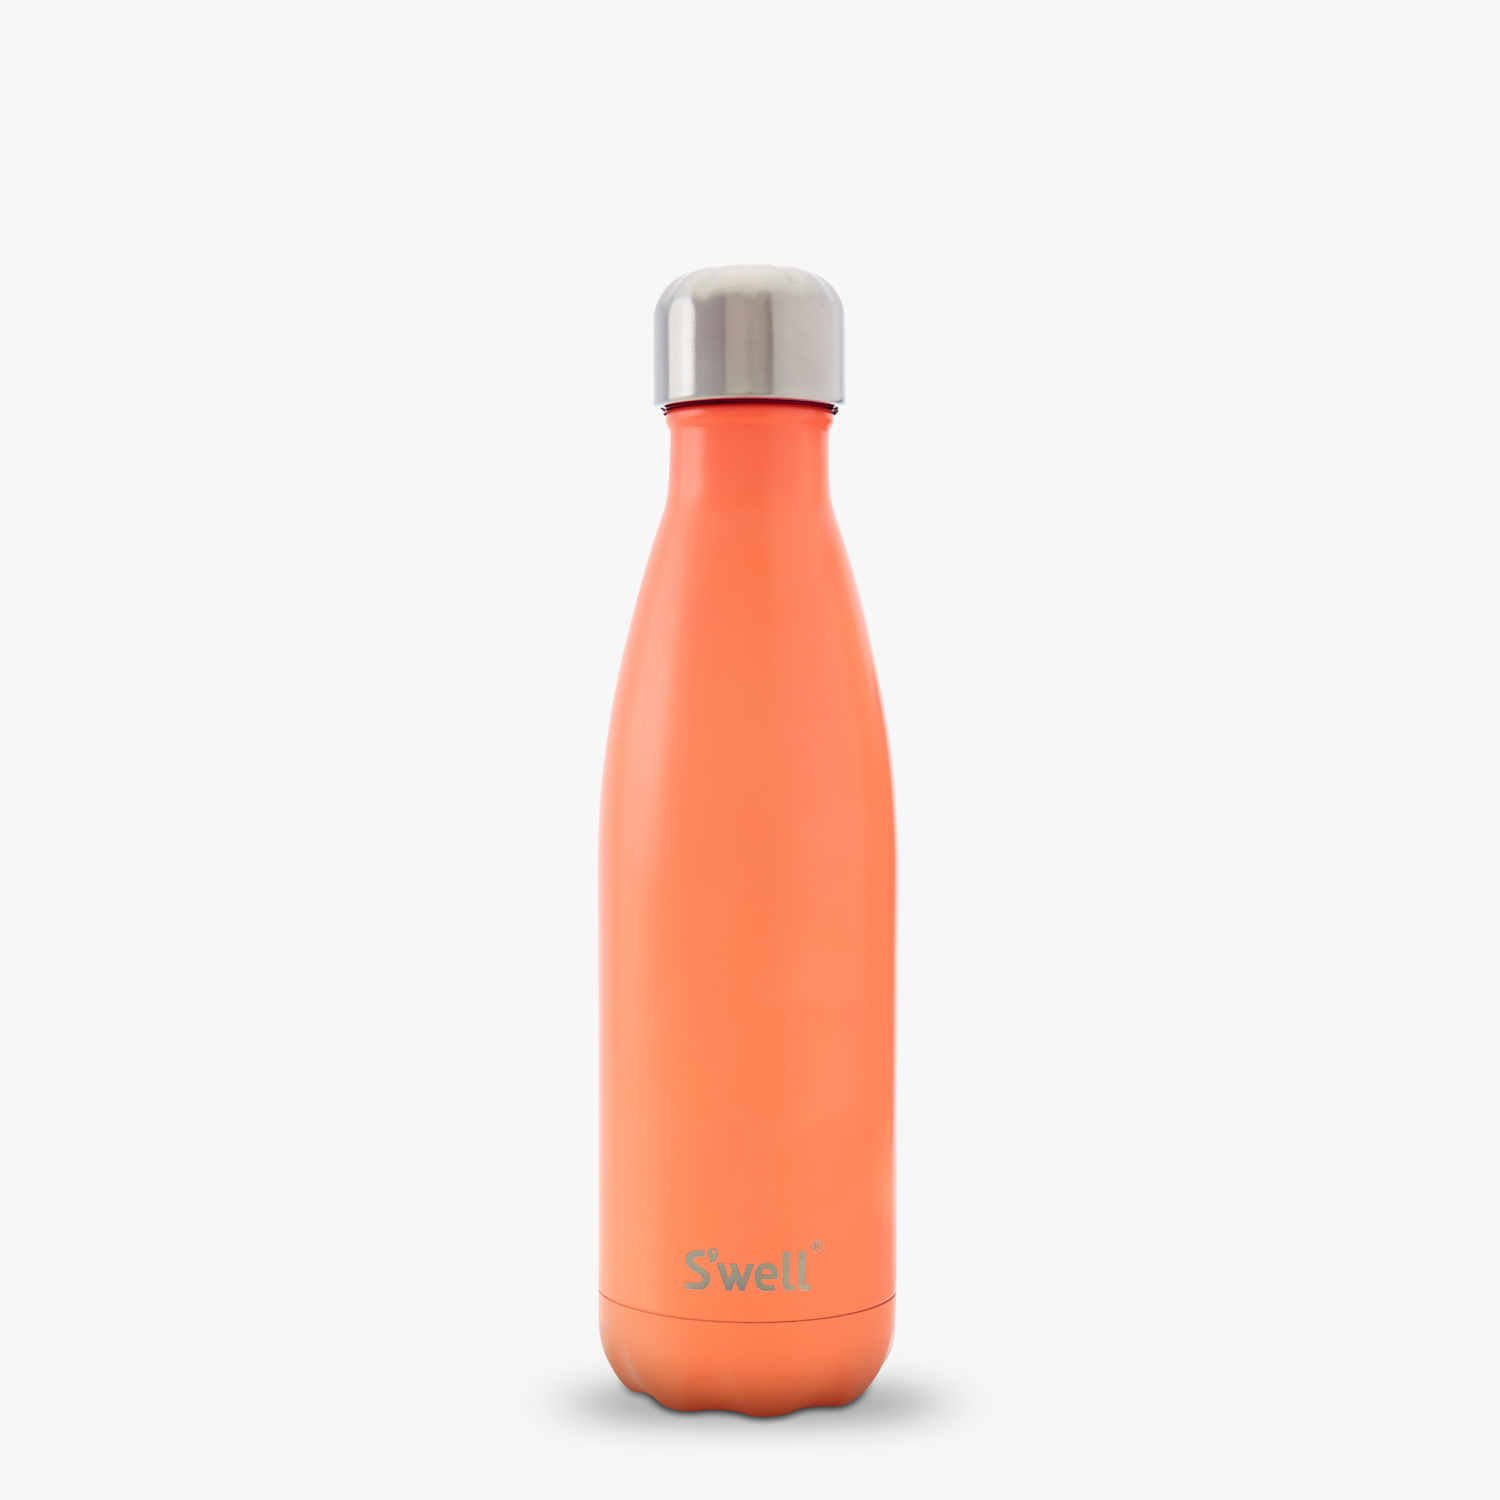 swell world-famous water bottles